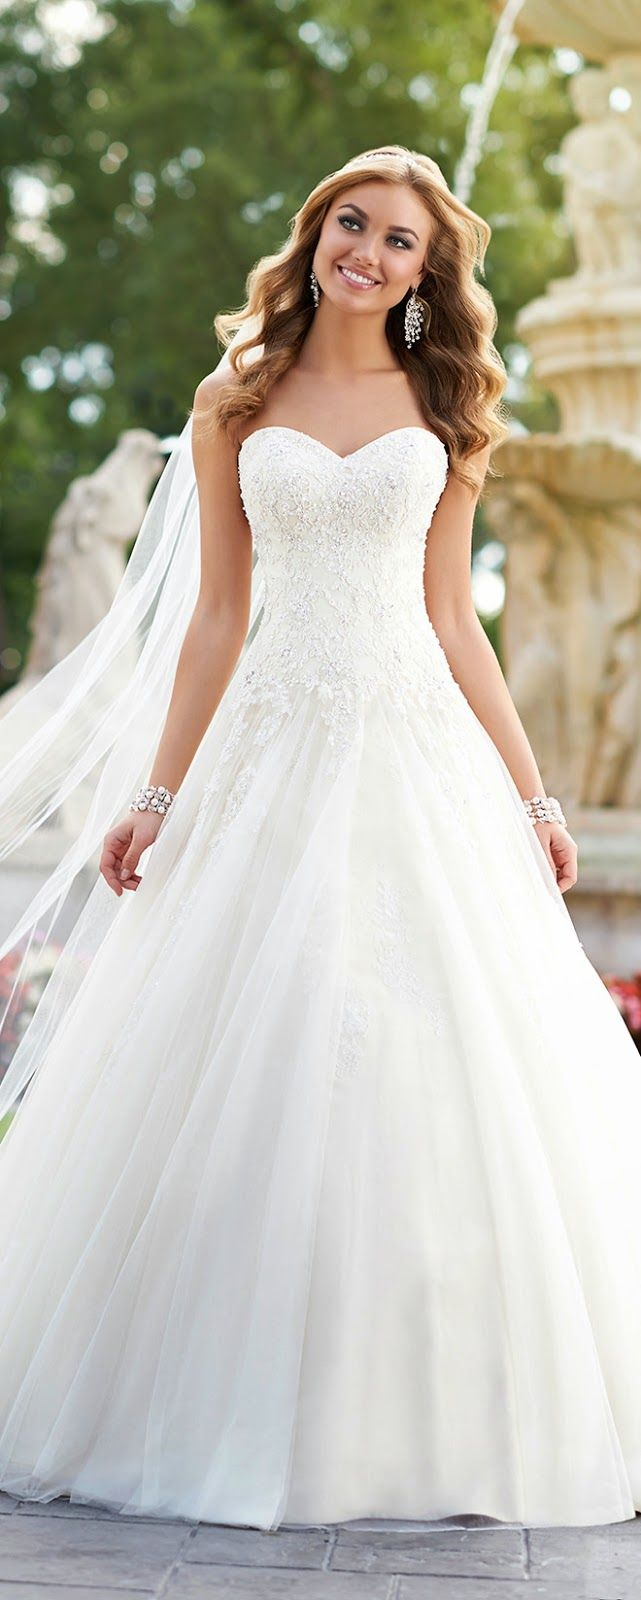 Just the shape!!! I want for my dress  Stella York Fall 2015 Bridal Collection : Special Preview | bellethemagazine.com